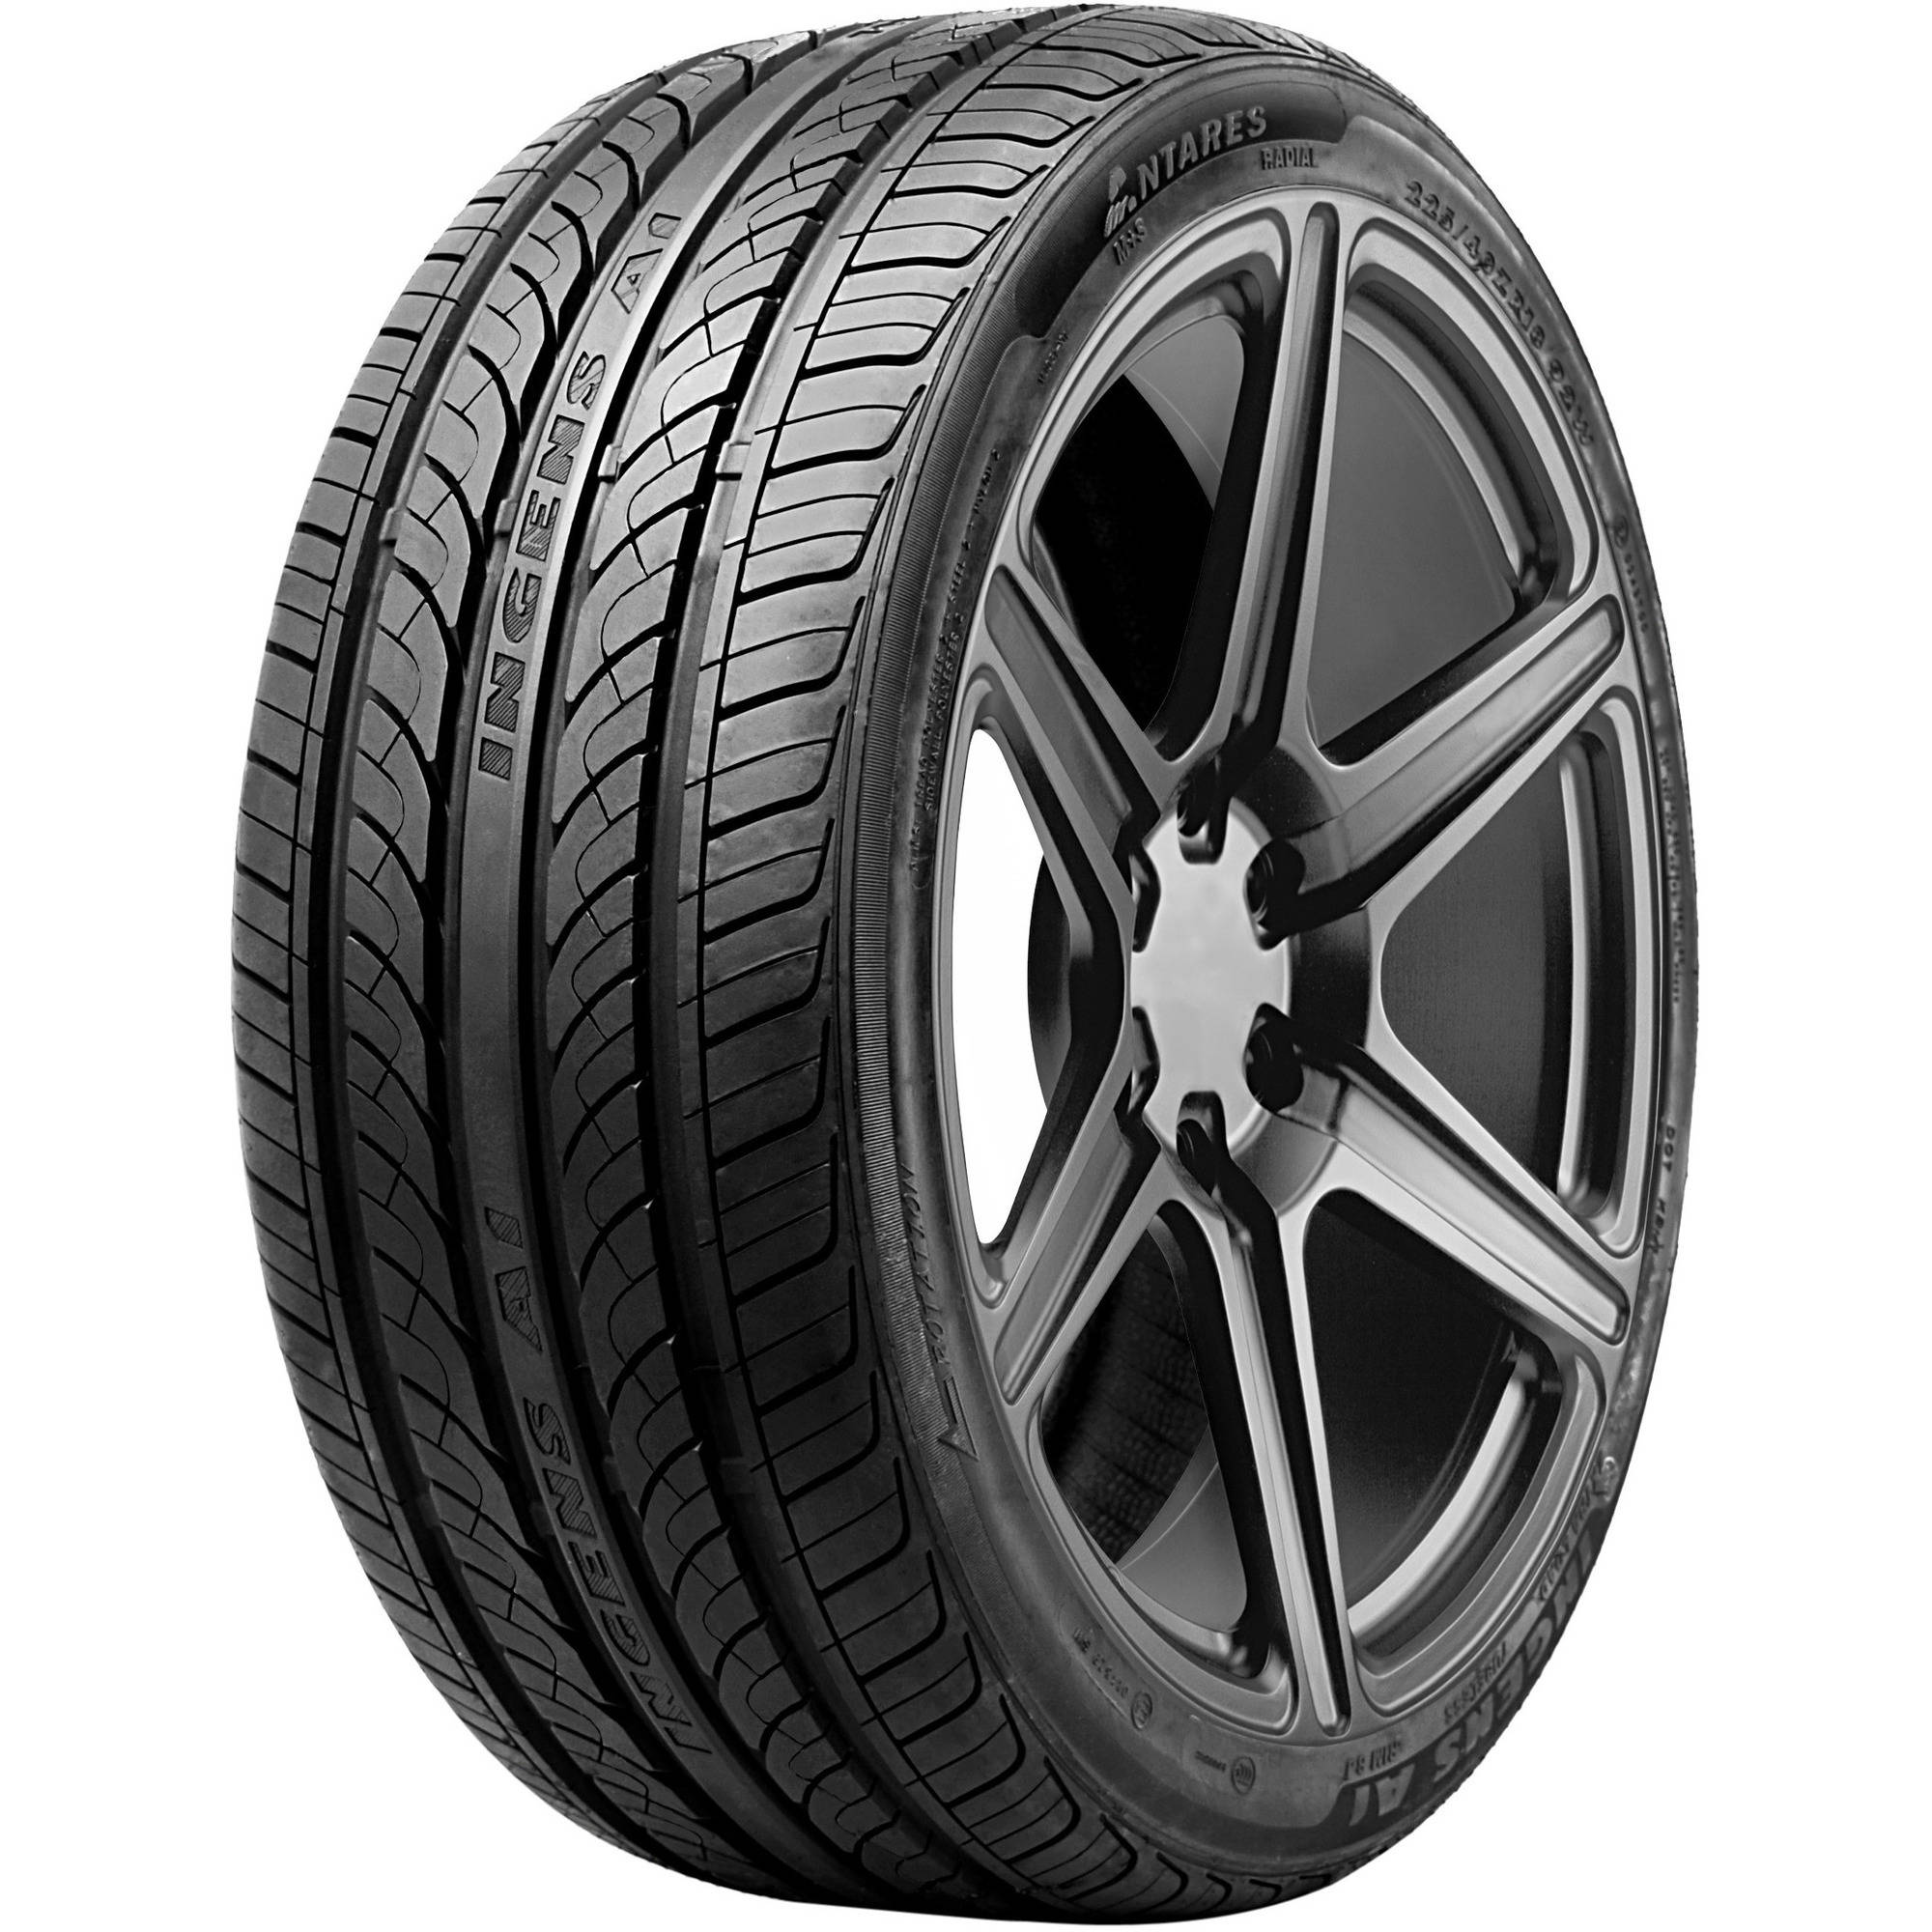 Antares Ingens A1 245/45R18 100W Tire